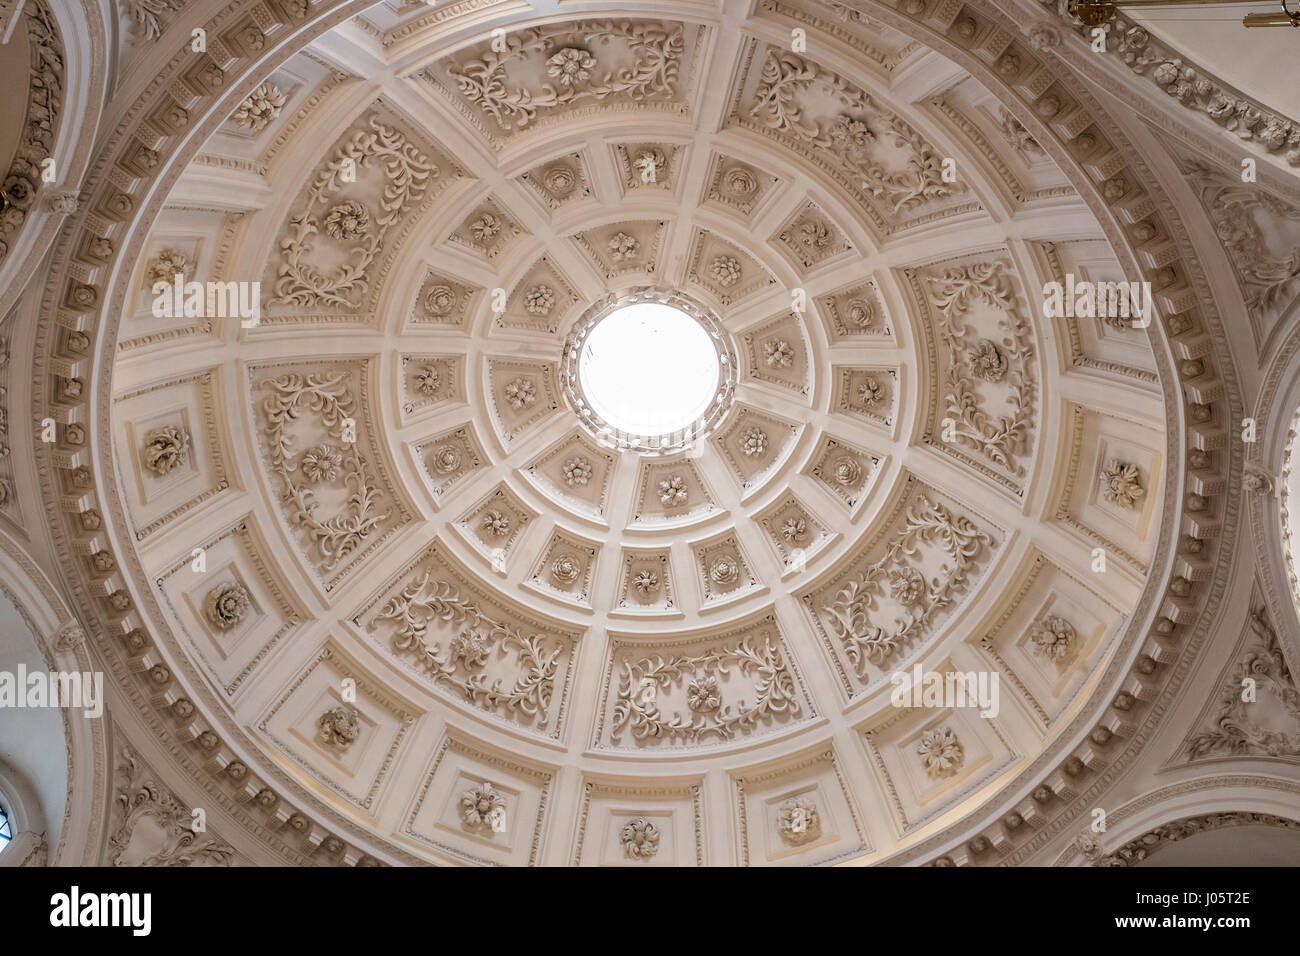 Dome At The Church Of St Stephen Walbrook, City Of London, England, Built  By Christopher Wren After The Fire Of London In 1666.